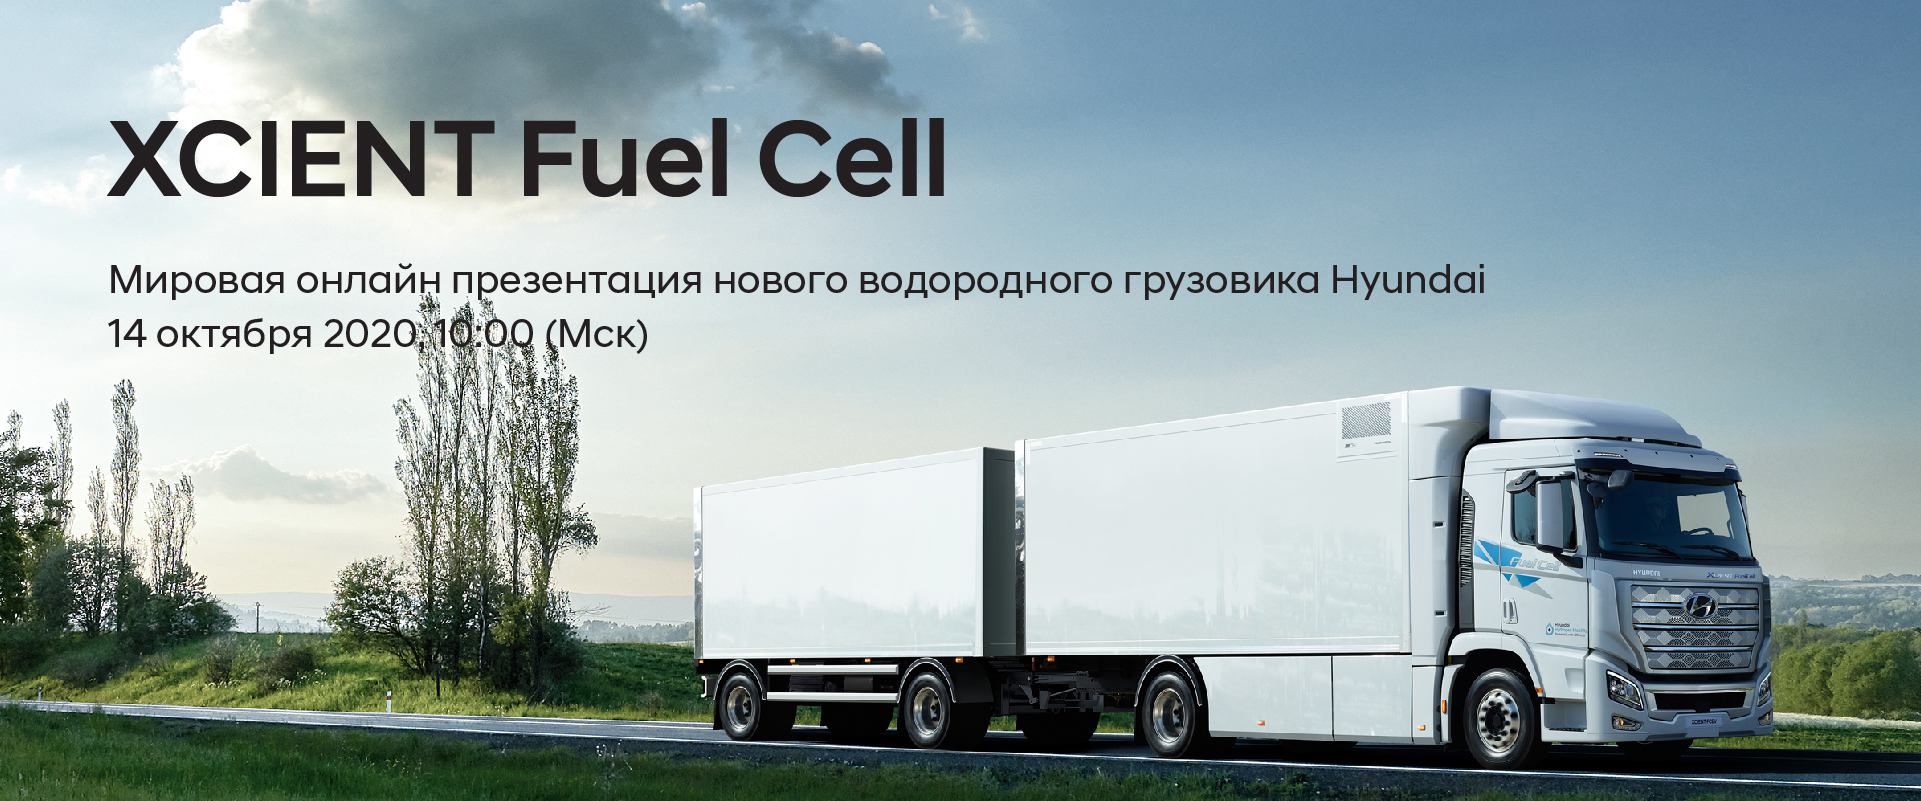 XCIENT Fuel Cell